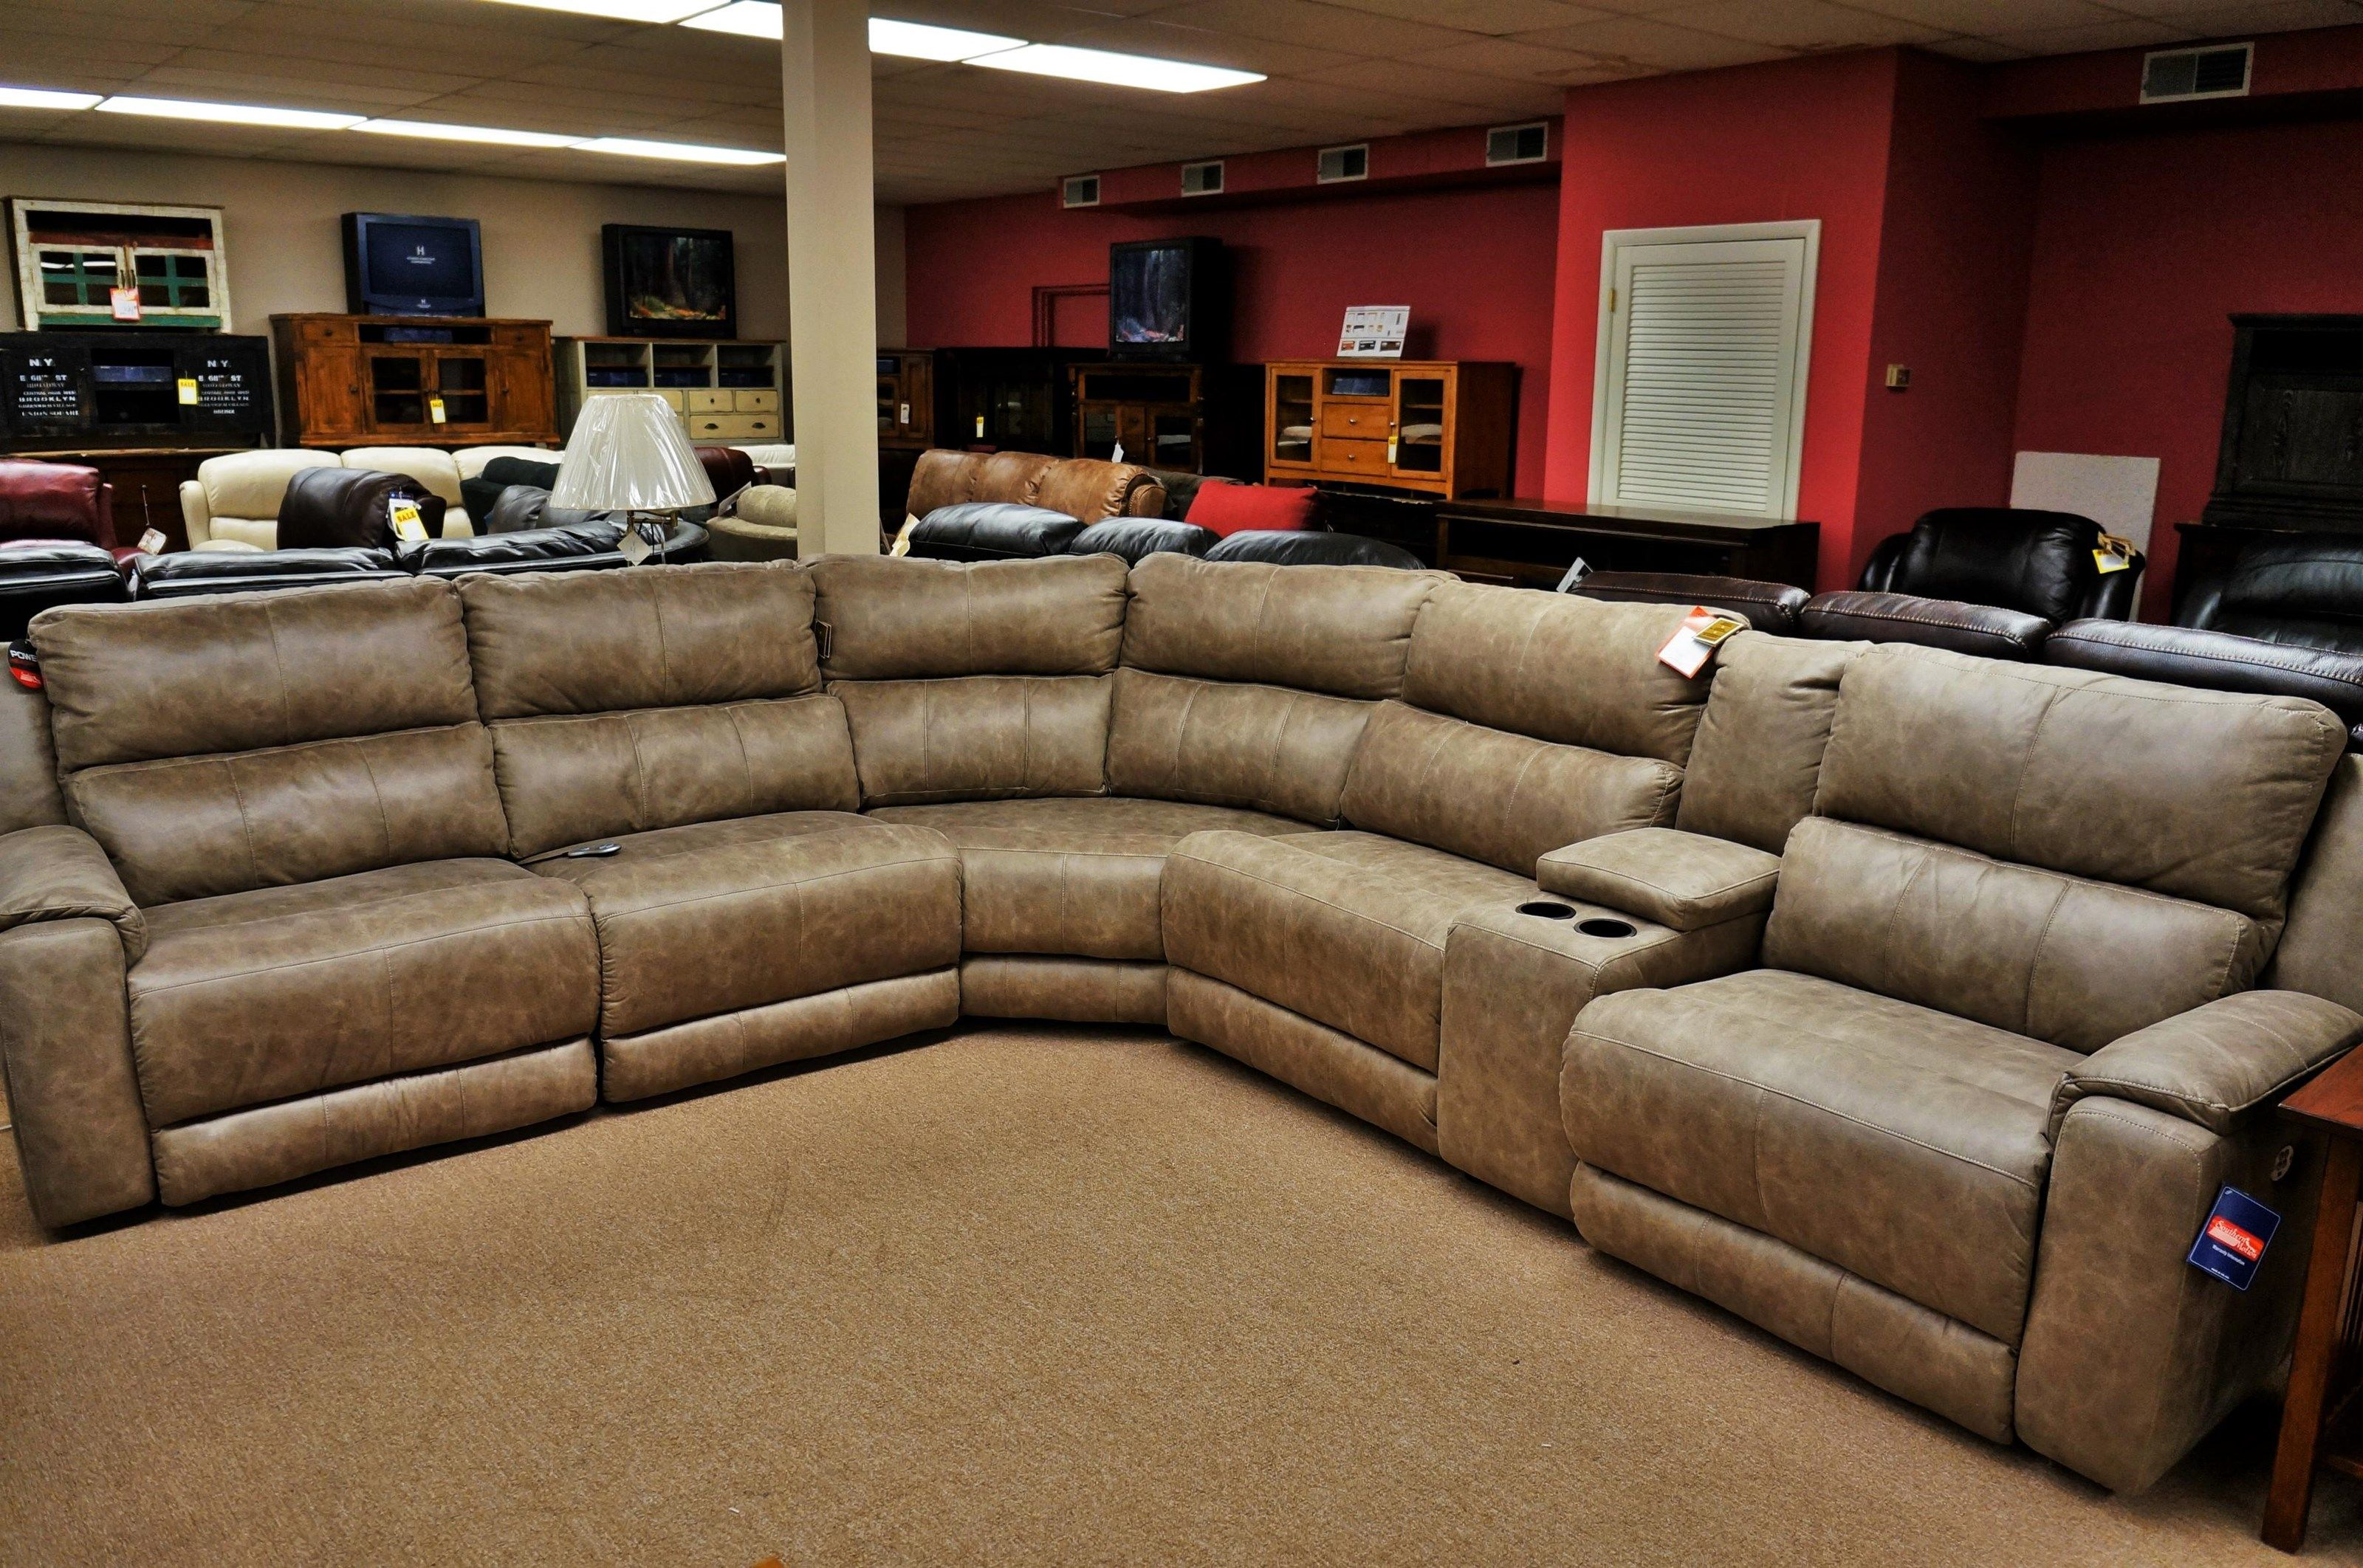 Dazzle Reclining Sectional With Power Headrests By Southern Motion